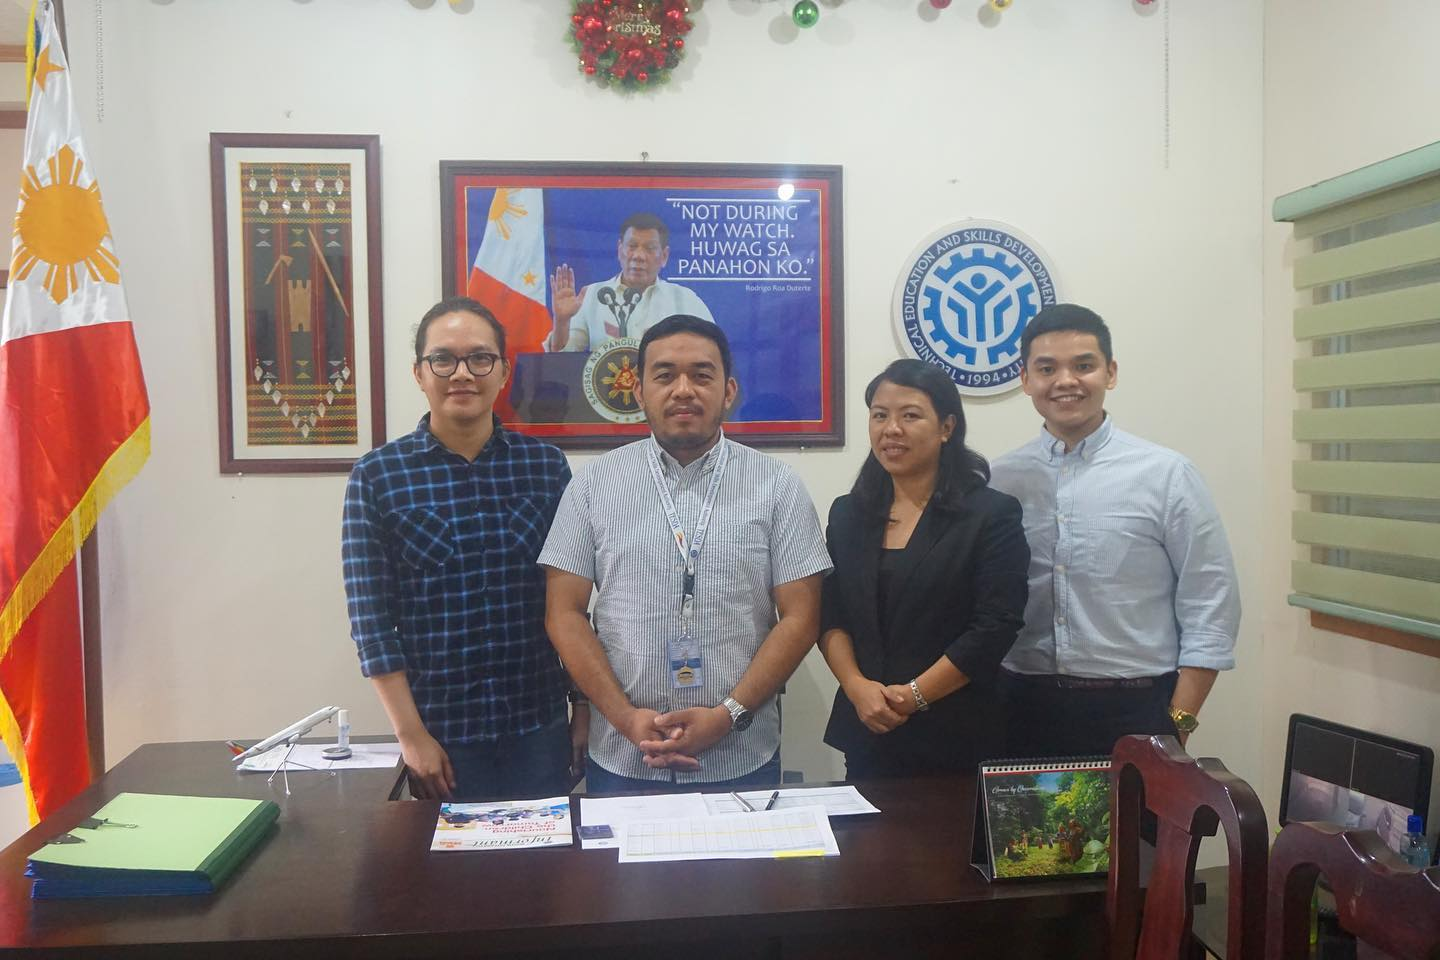 TESDA-12 partners with Philippine Business for Education (PBeD) to bring down youth unemployment